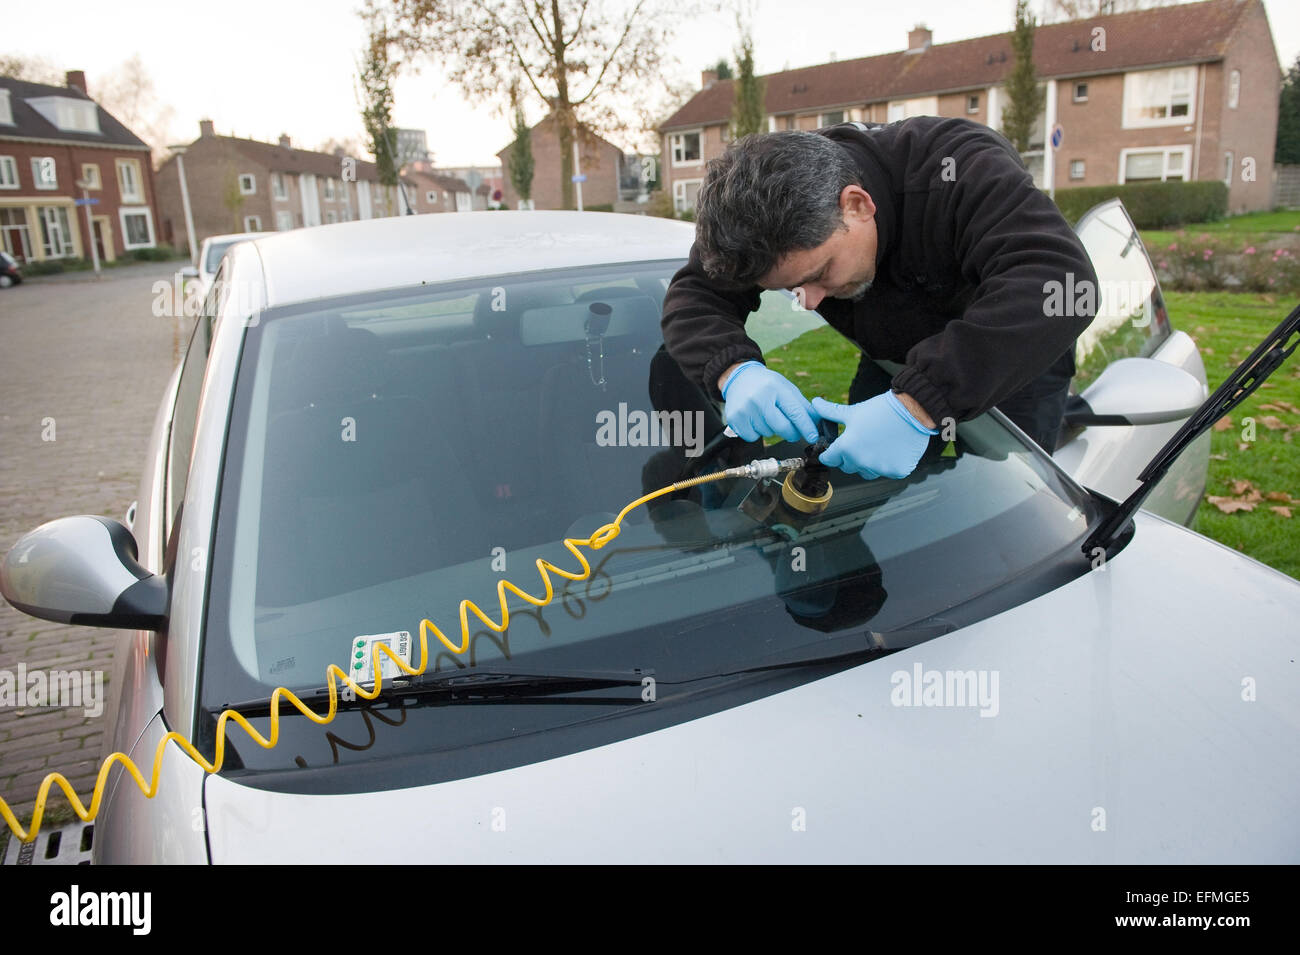 A serviceman from 'carglass' is repairing a crack in the windshield of a car on location - Stock Image